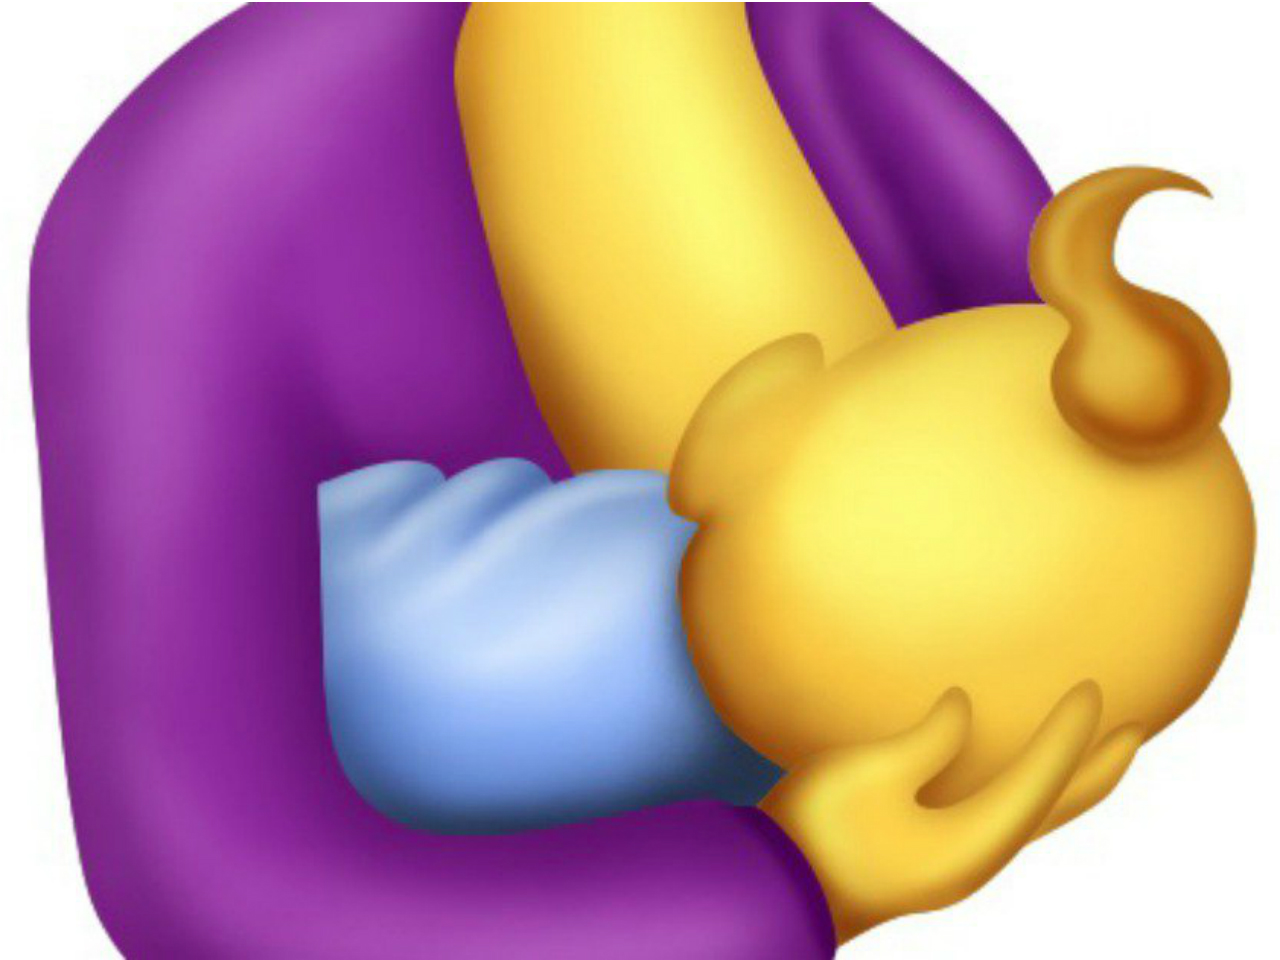 Breastfeeding mom emoji